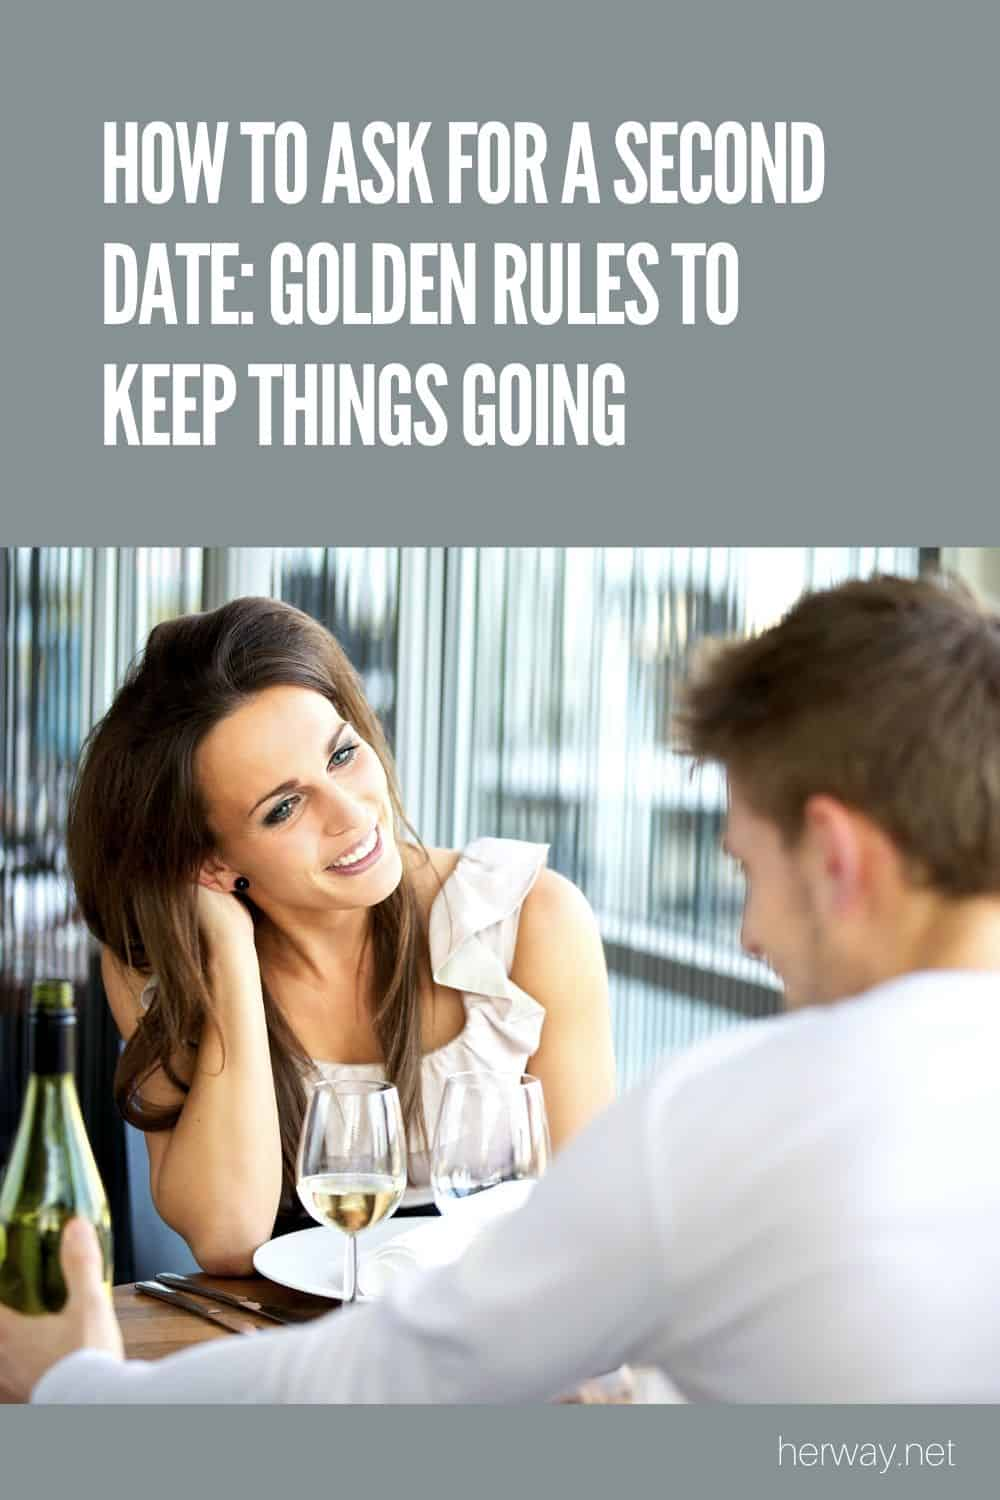 How To Ask For A Second Date: Golden Rules To Keep Things Going